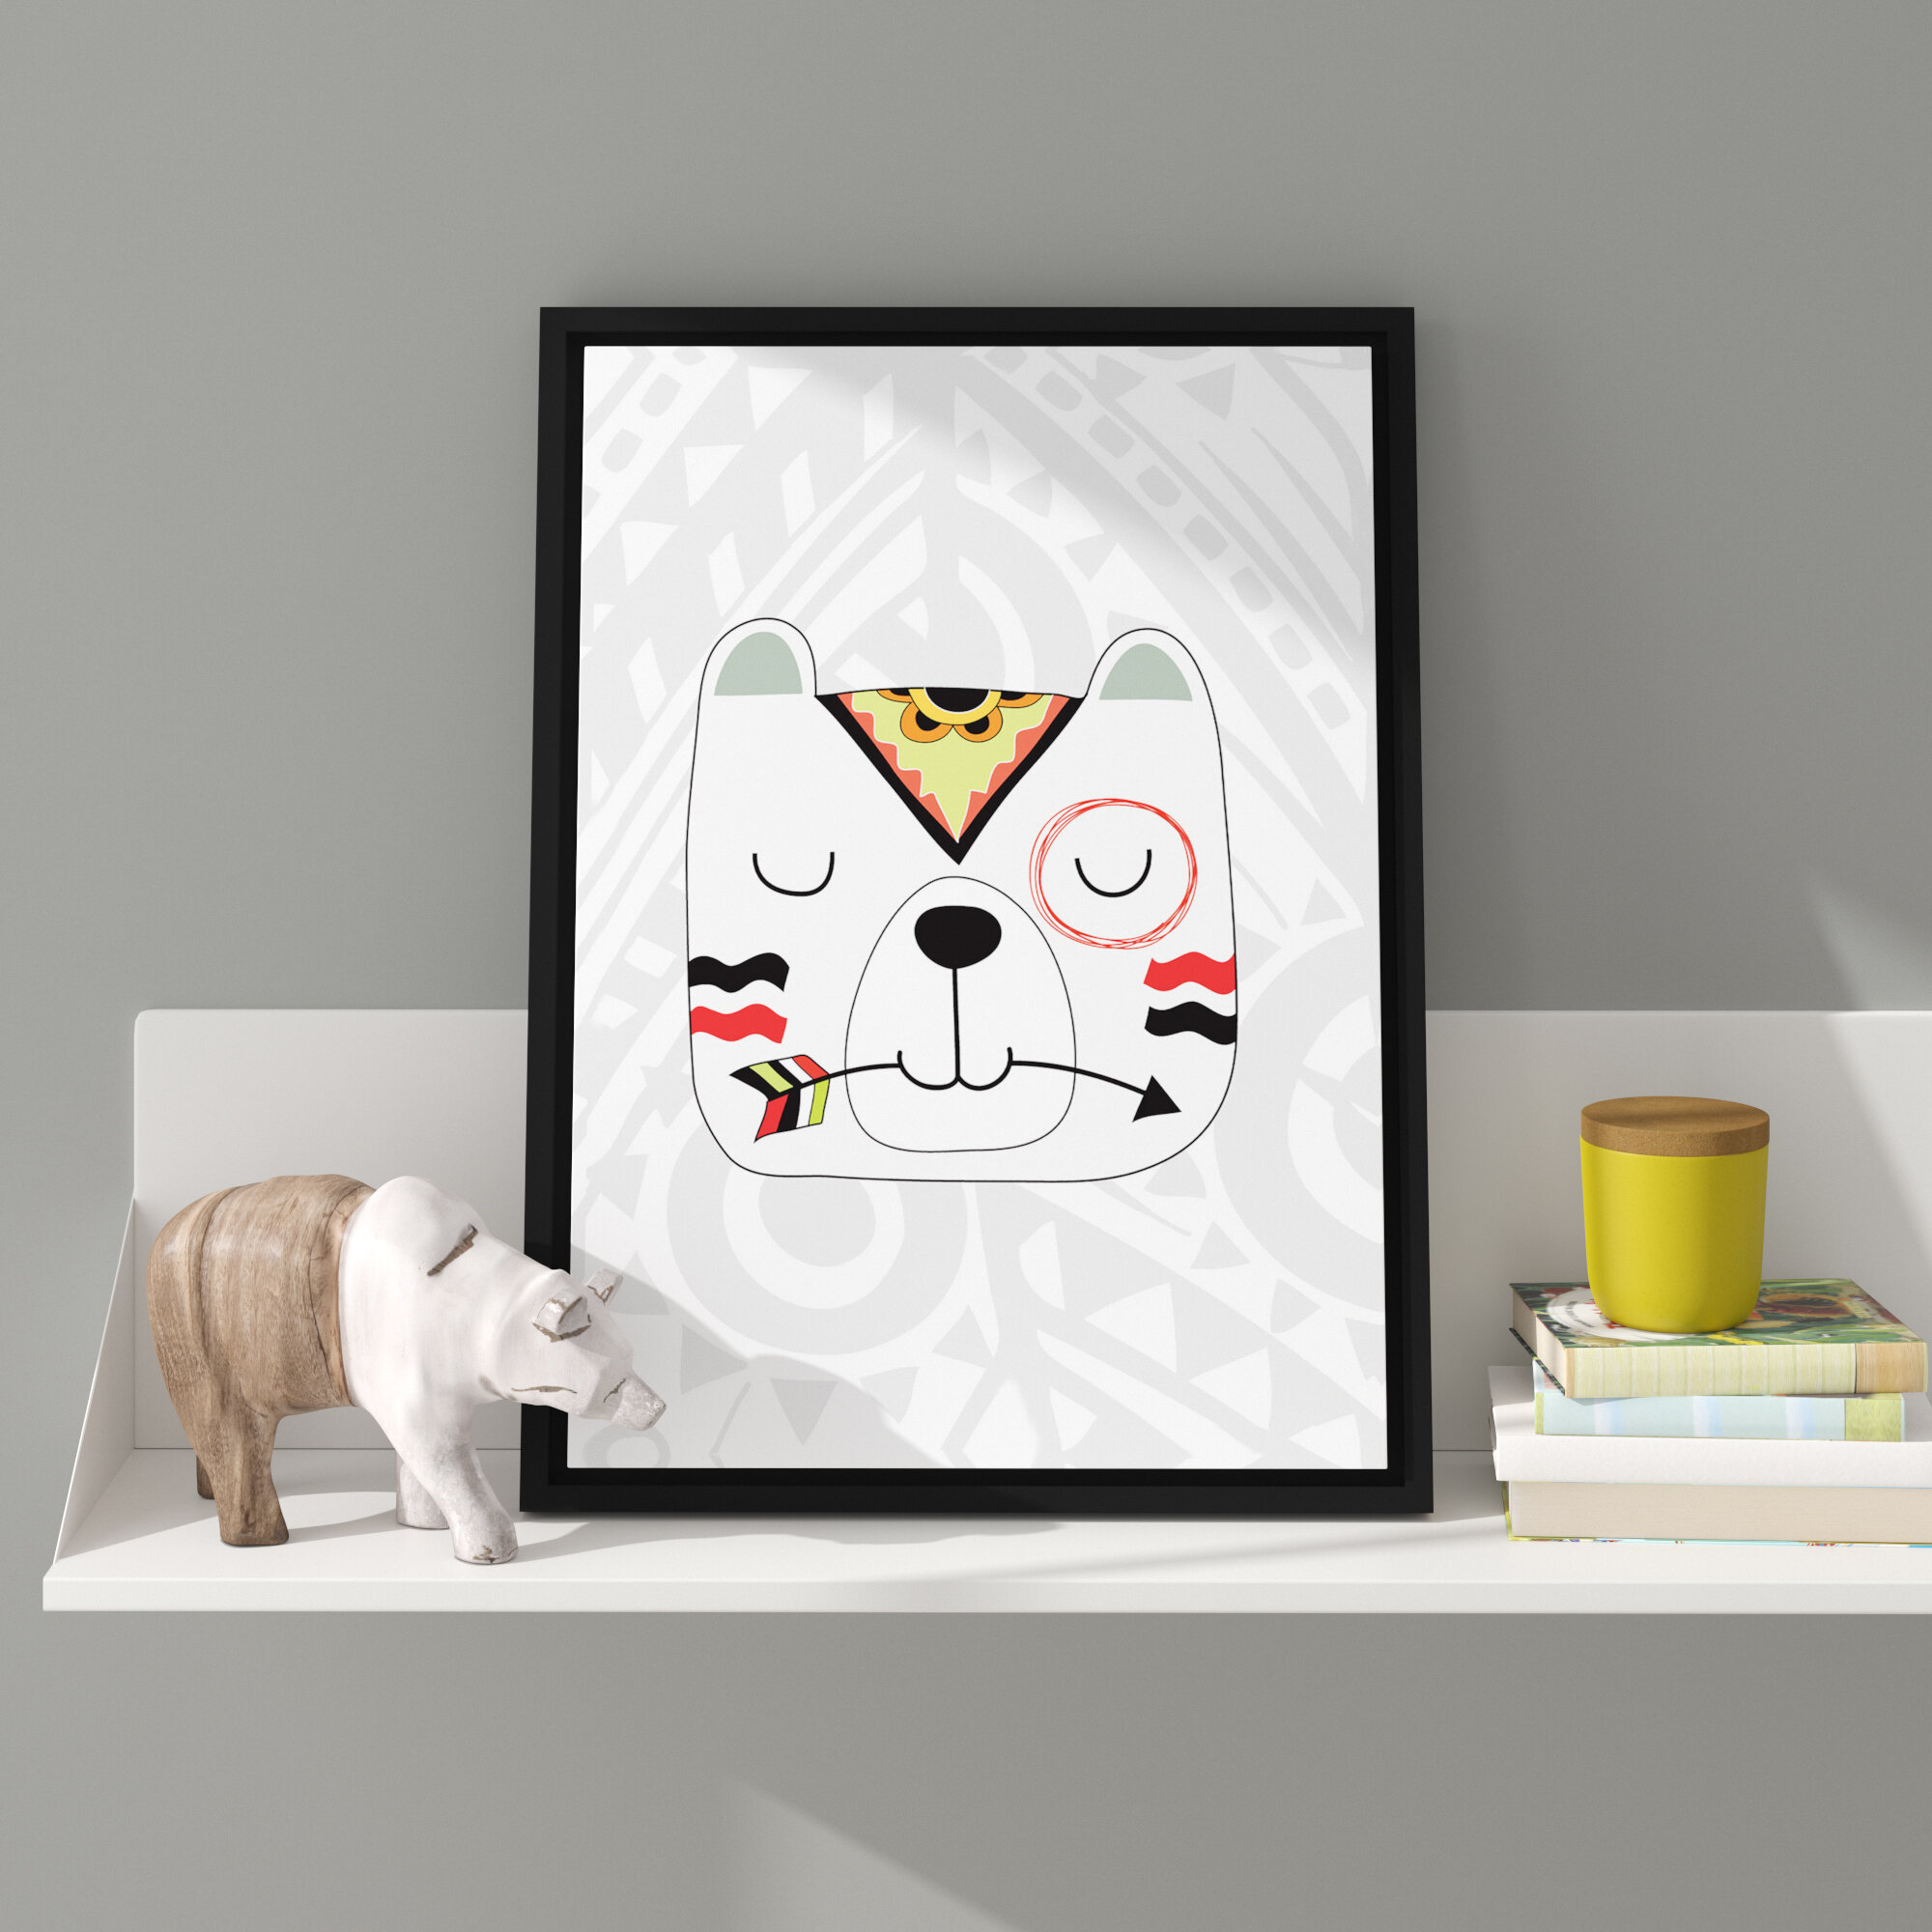 Viv Rae Aida Tribal 5 Bear Framed Art